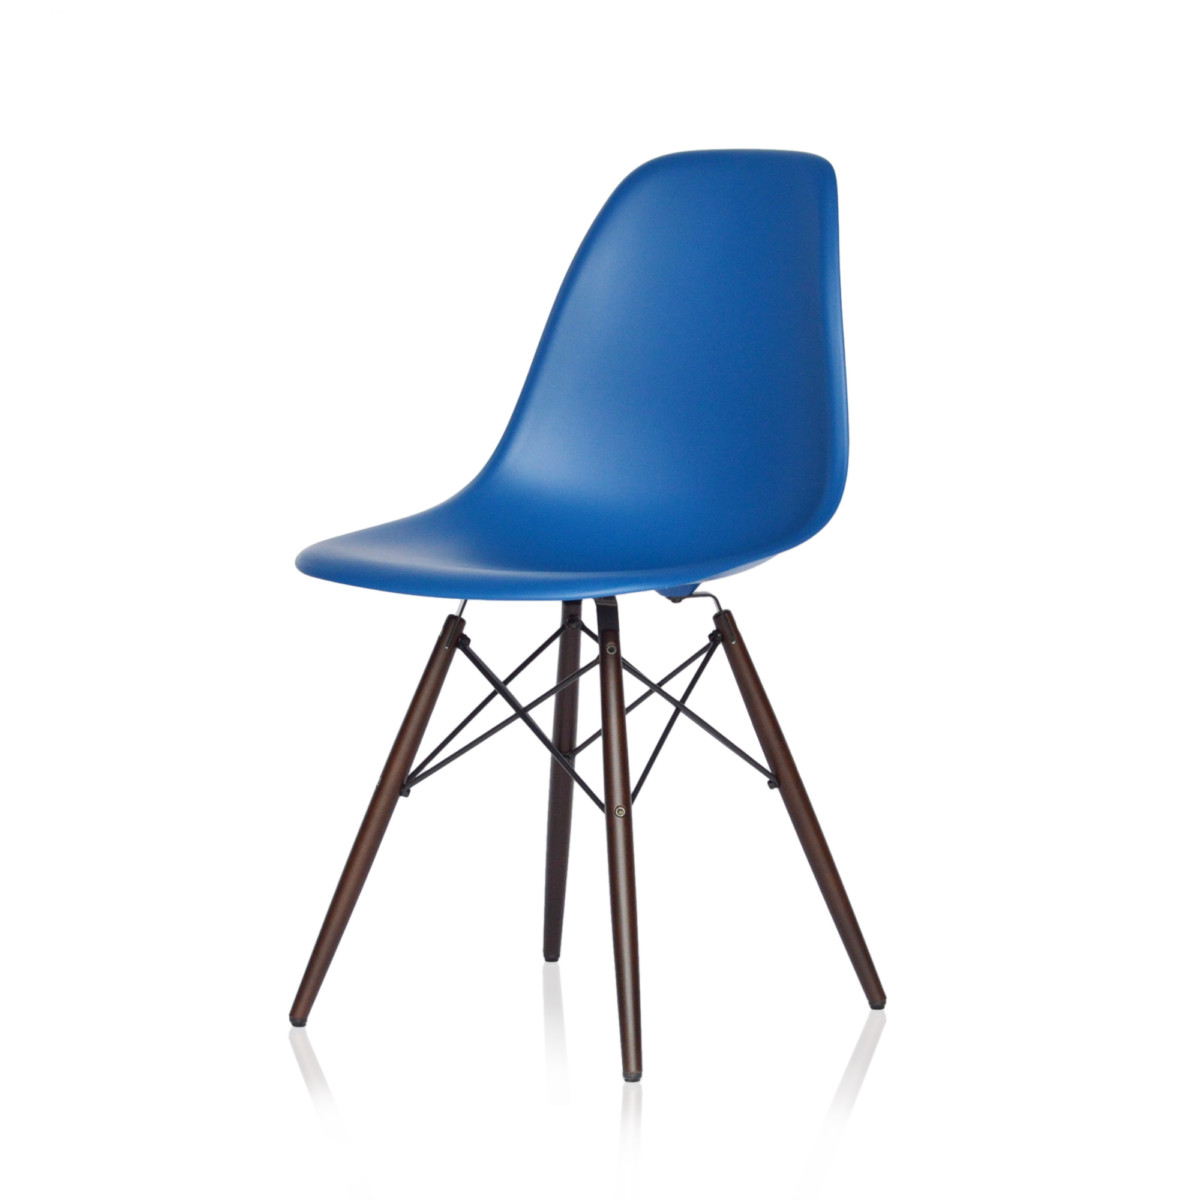 vitra eames plastic side chair dsw marineblau midmodern. Black Bedroom Furniture Sets. Home Design Ideas